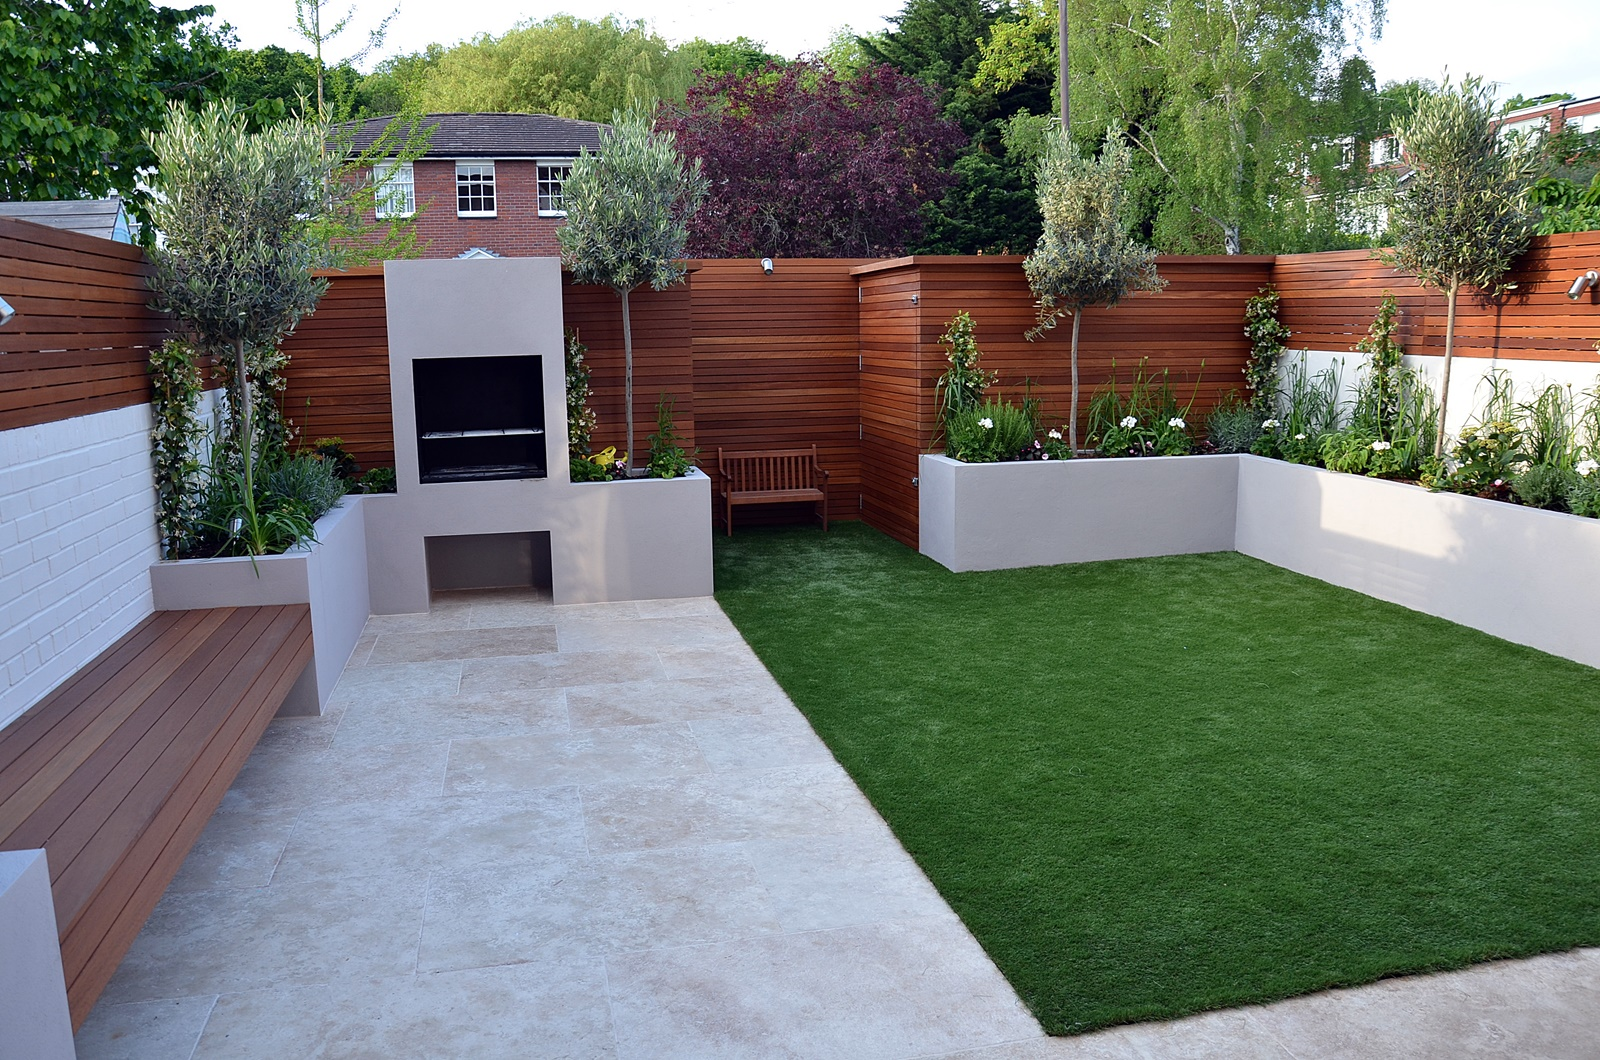 Modern garden design fulham chelsea clapham battersea for Little garden design